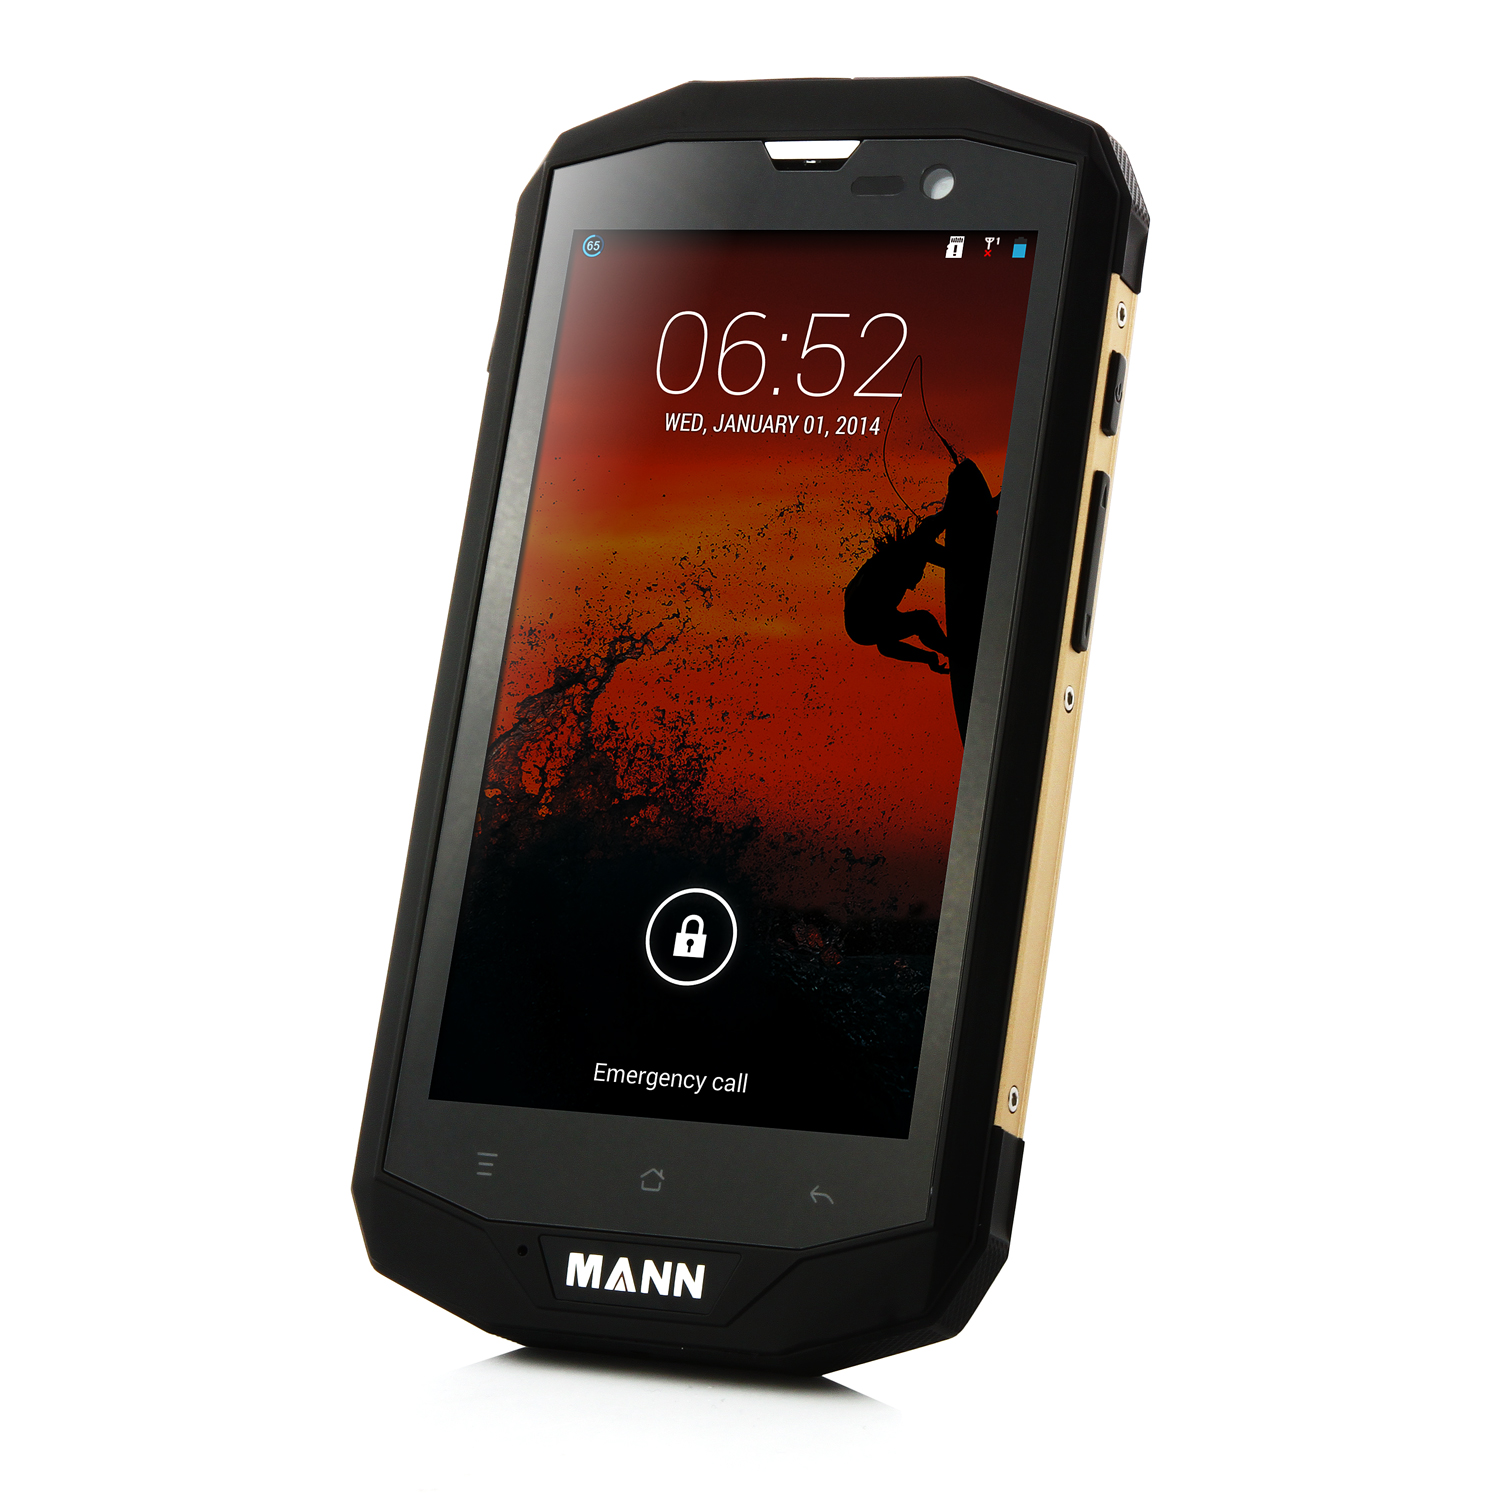 MANN ZUG 5S Smartphone 4G LTE IP67 Android 4.4 Quad Core 5.0 Inch HD Screen Black&Gold